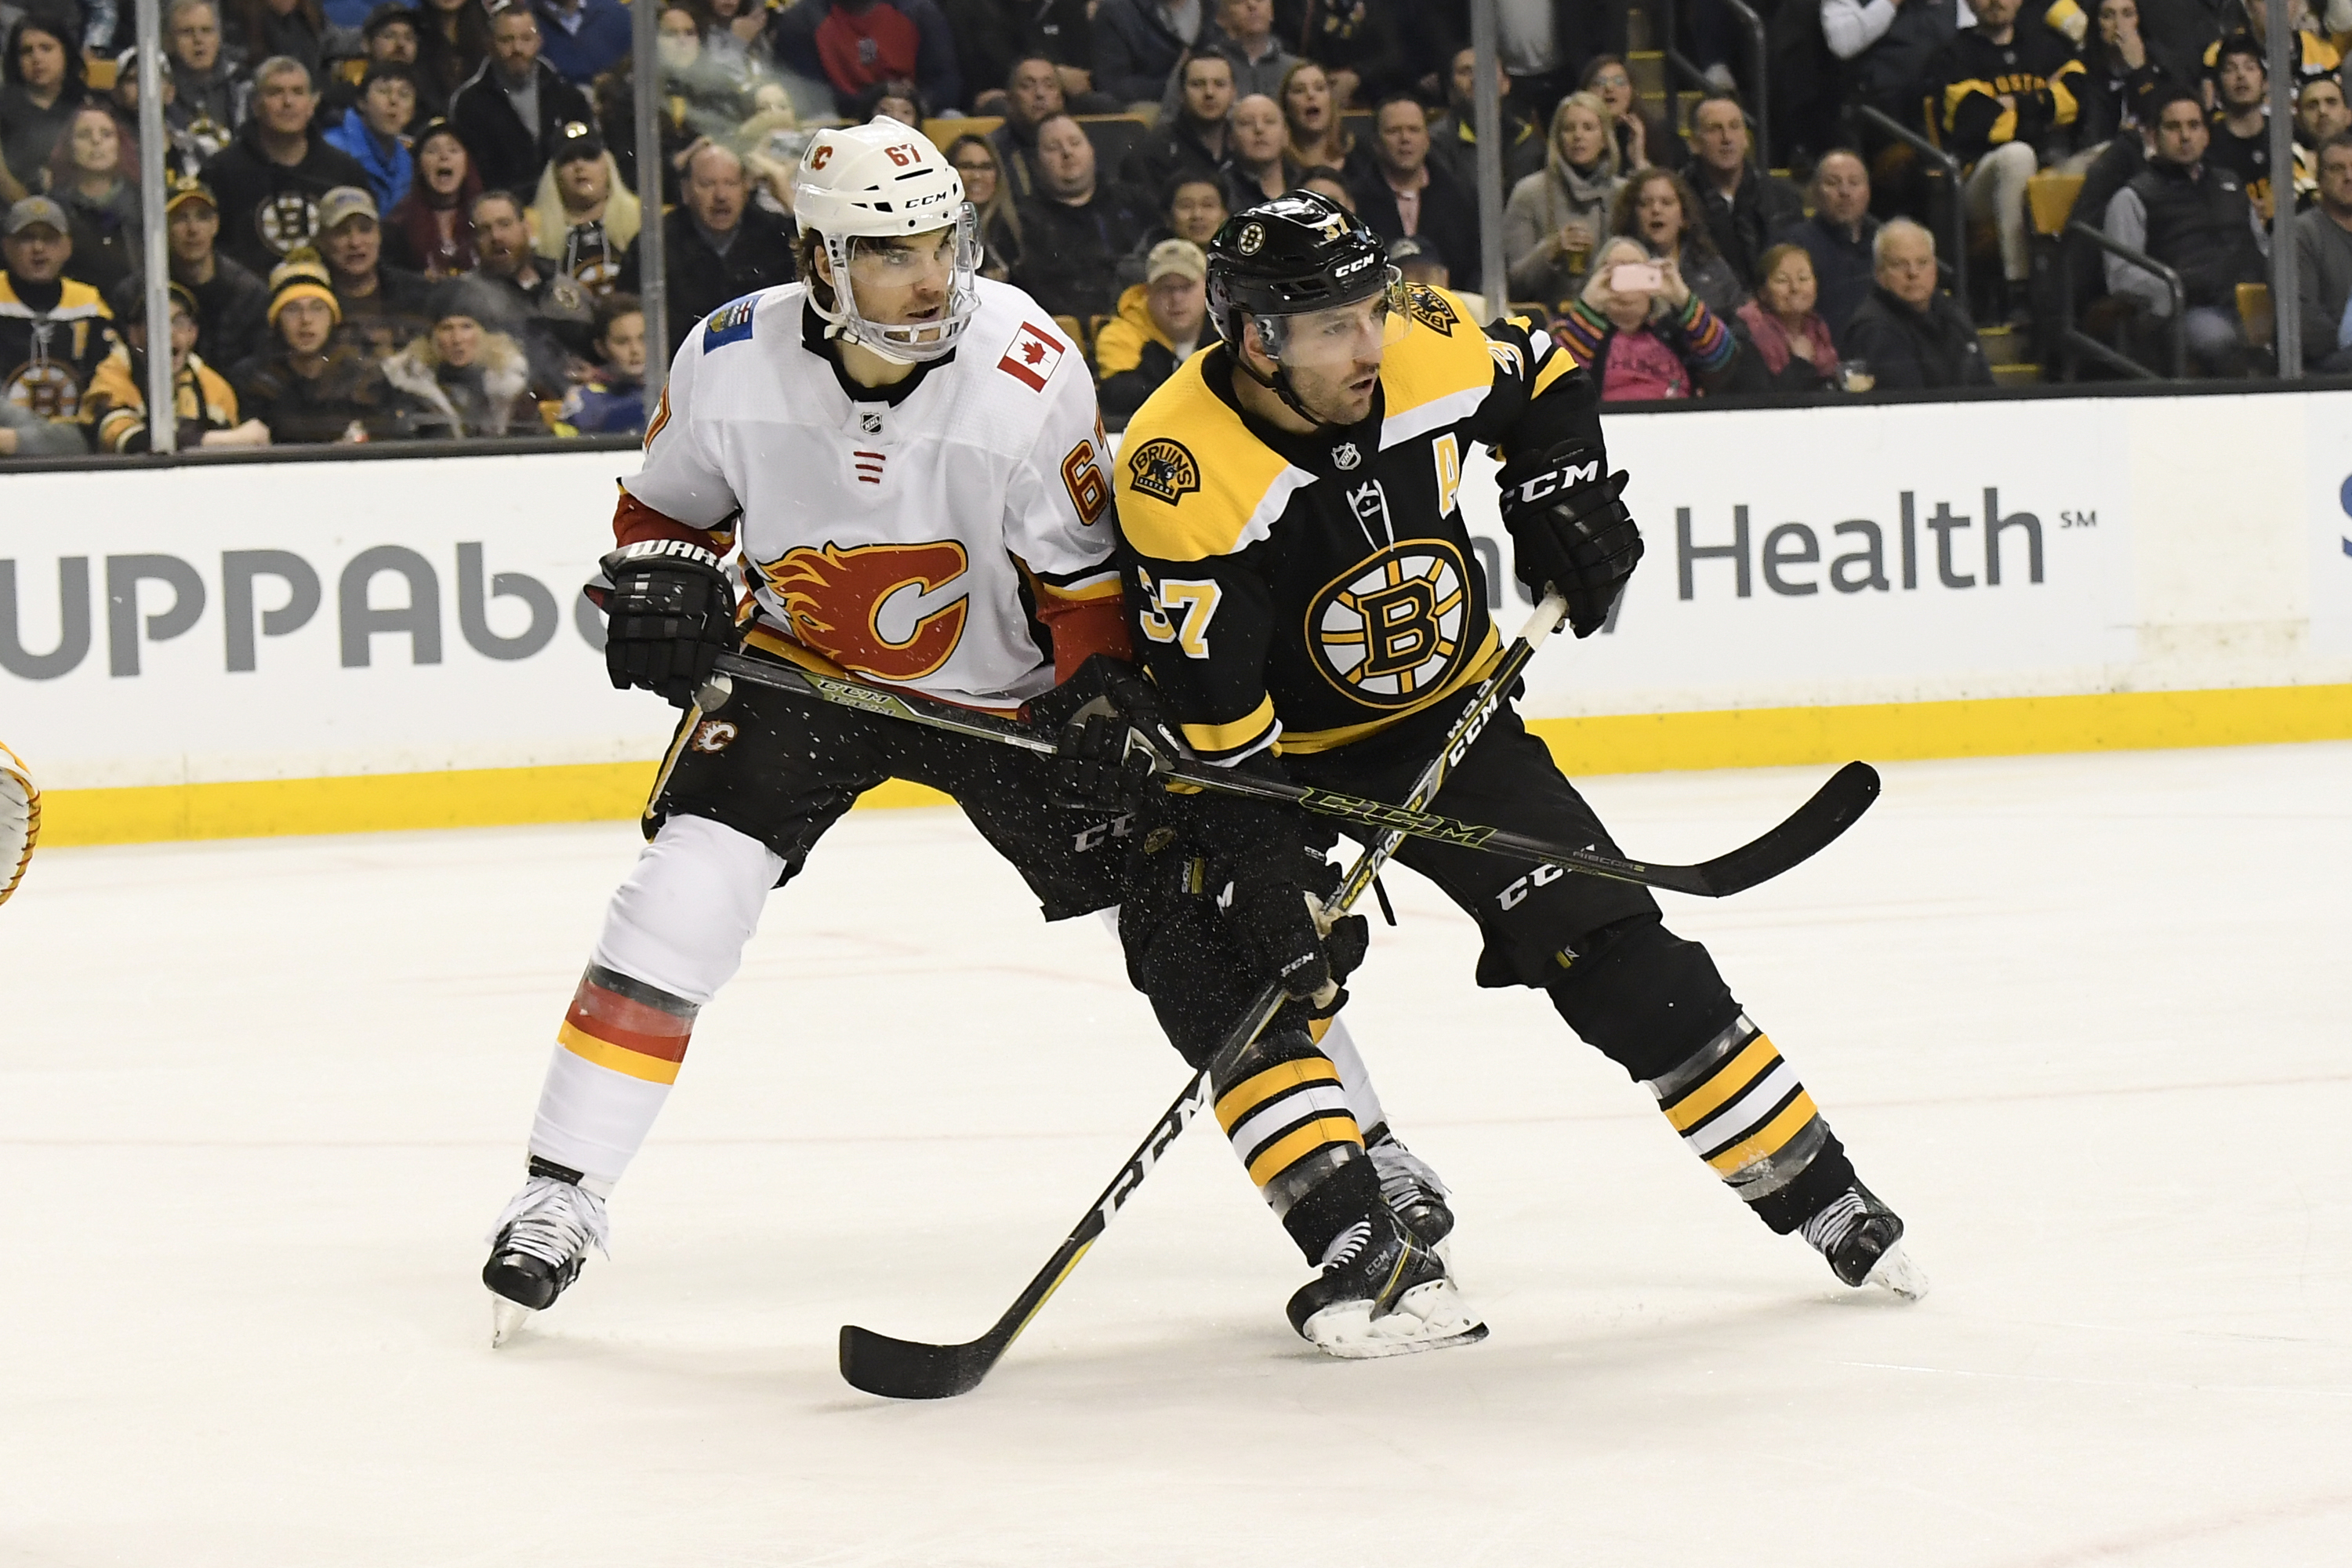 Boston Bruins: Boston Bruins Win Last Night Was A Statement To NHL